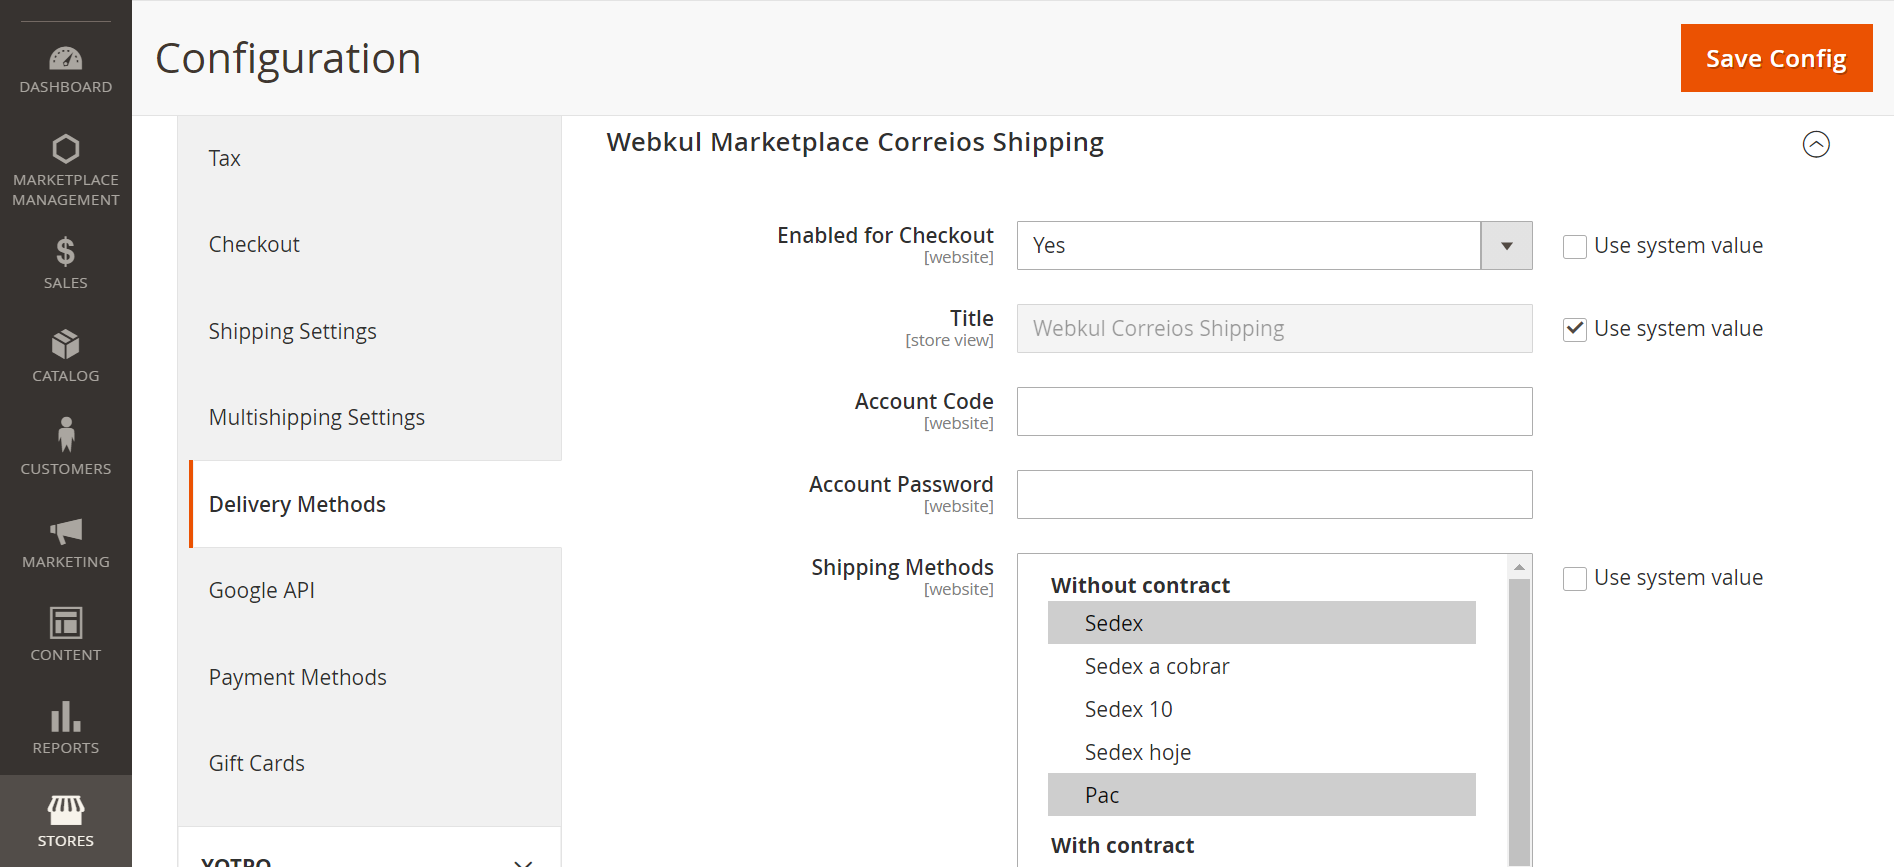 Configuration-Settings-Stores-Magento-Admin-18